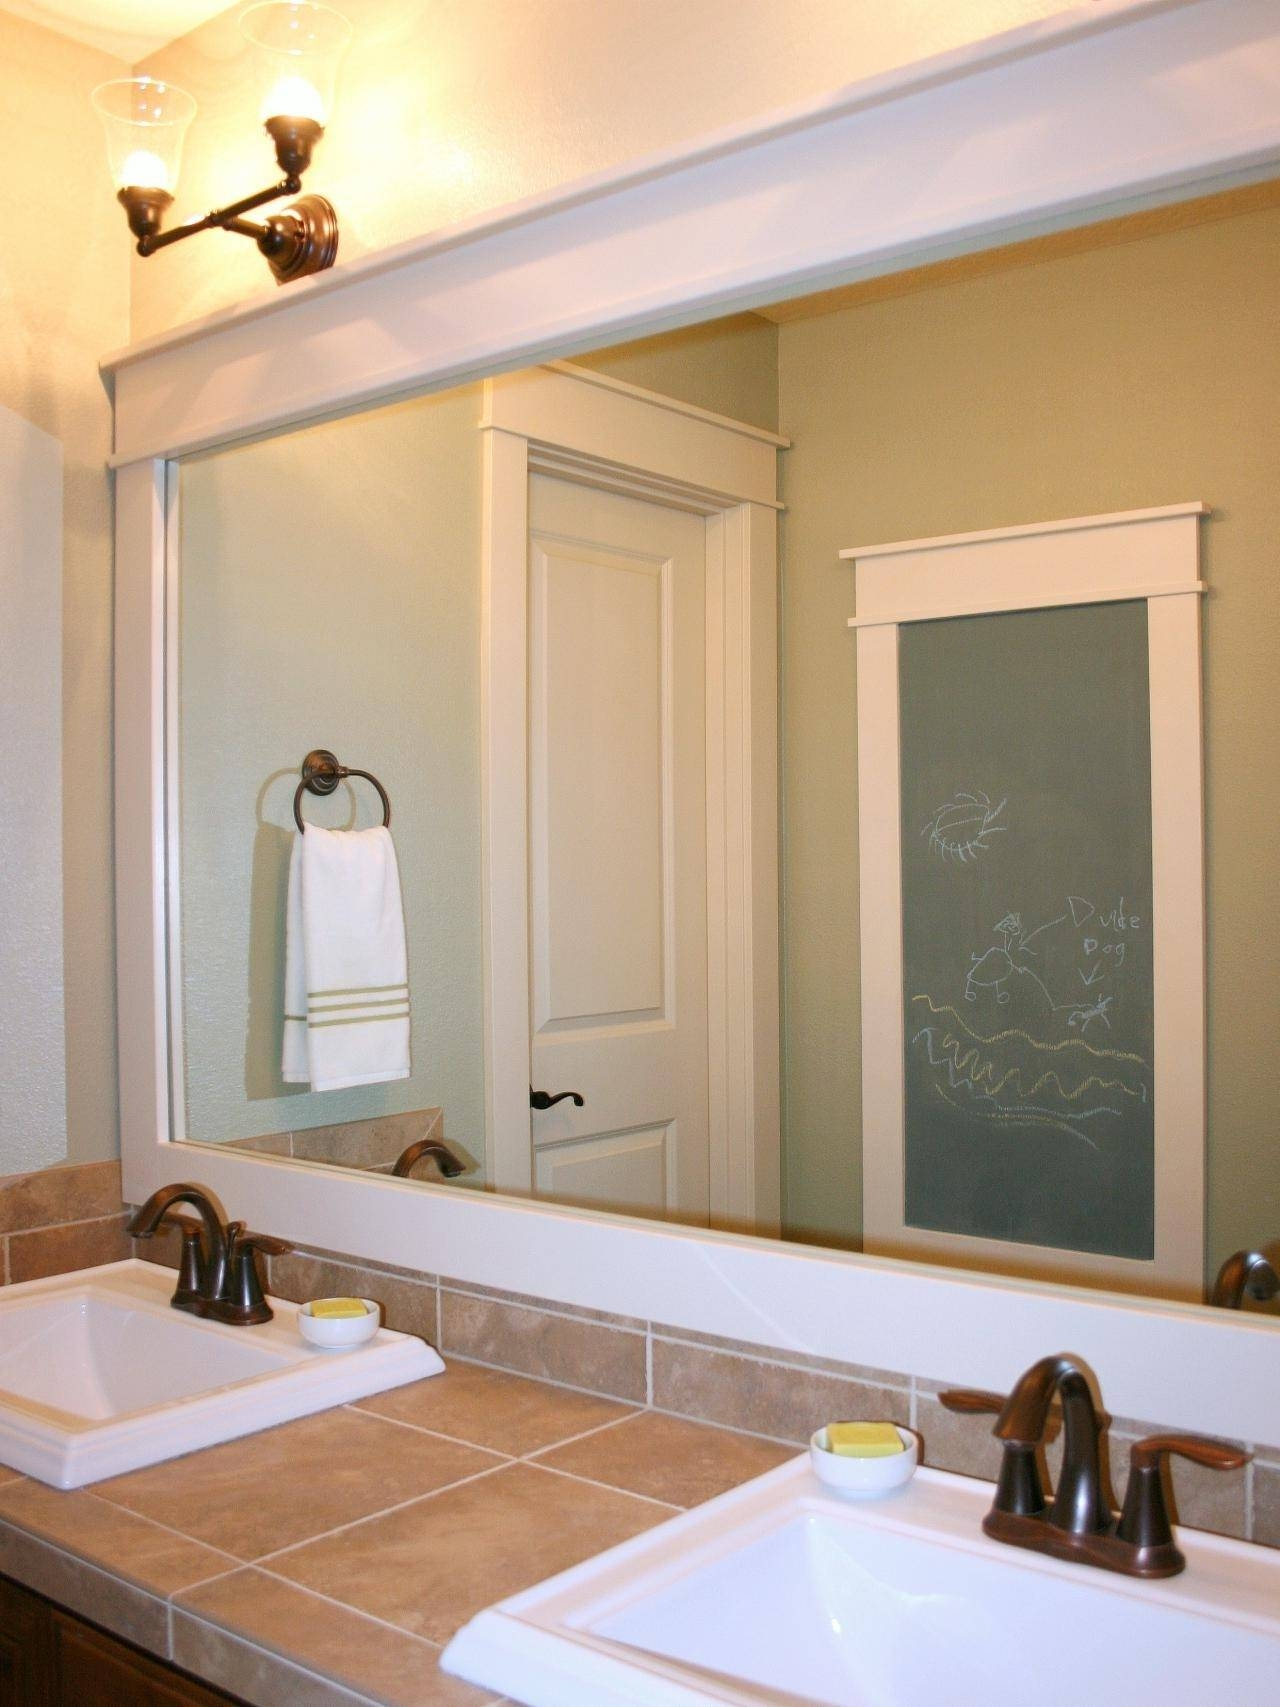 Bathroom: Elegant Bathroom Decor With Large Framed Bathroom Within Antique Frameless Mirrors (View 17 of 25)